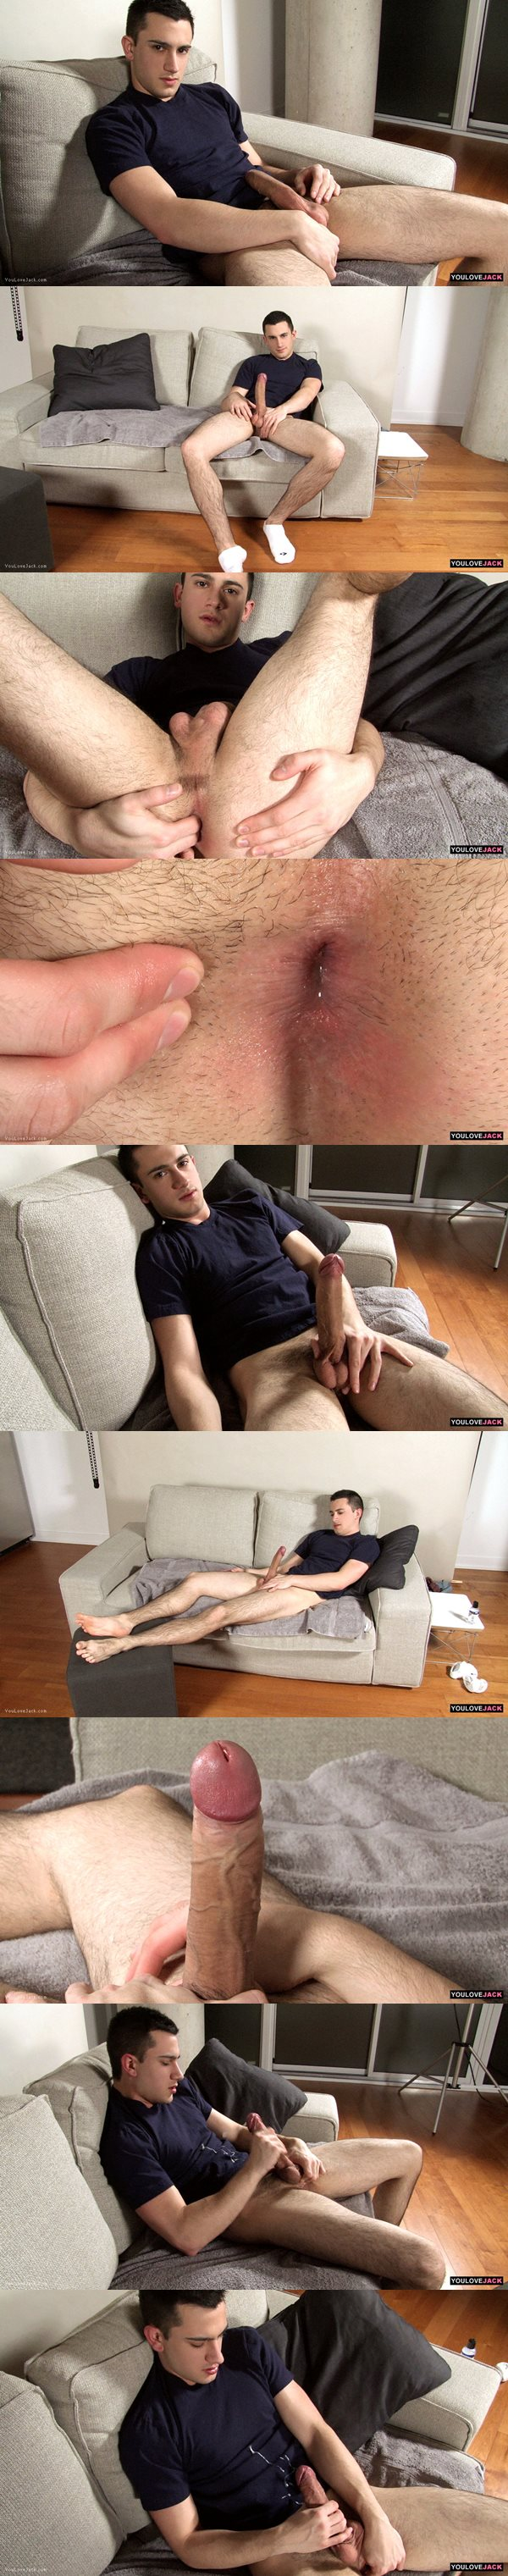 Handsome straight jock Mick Roberts strokes his big, long dick and fingers his tight ass at Youlovejack